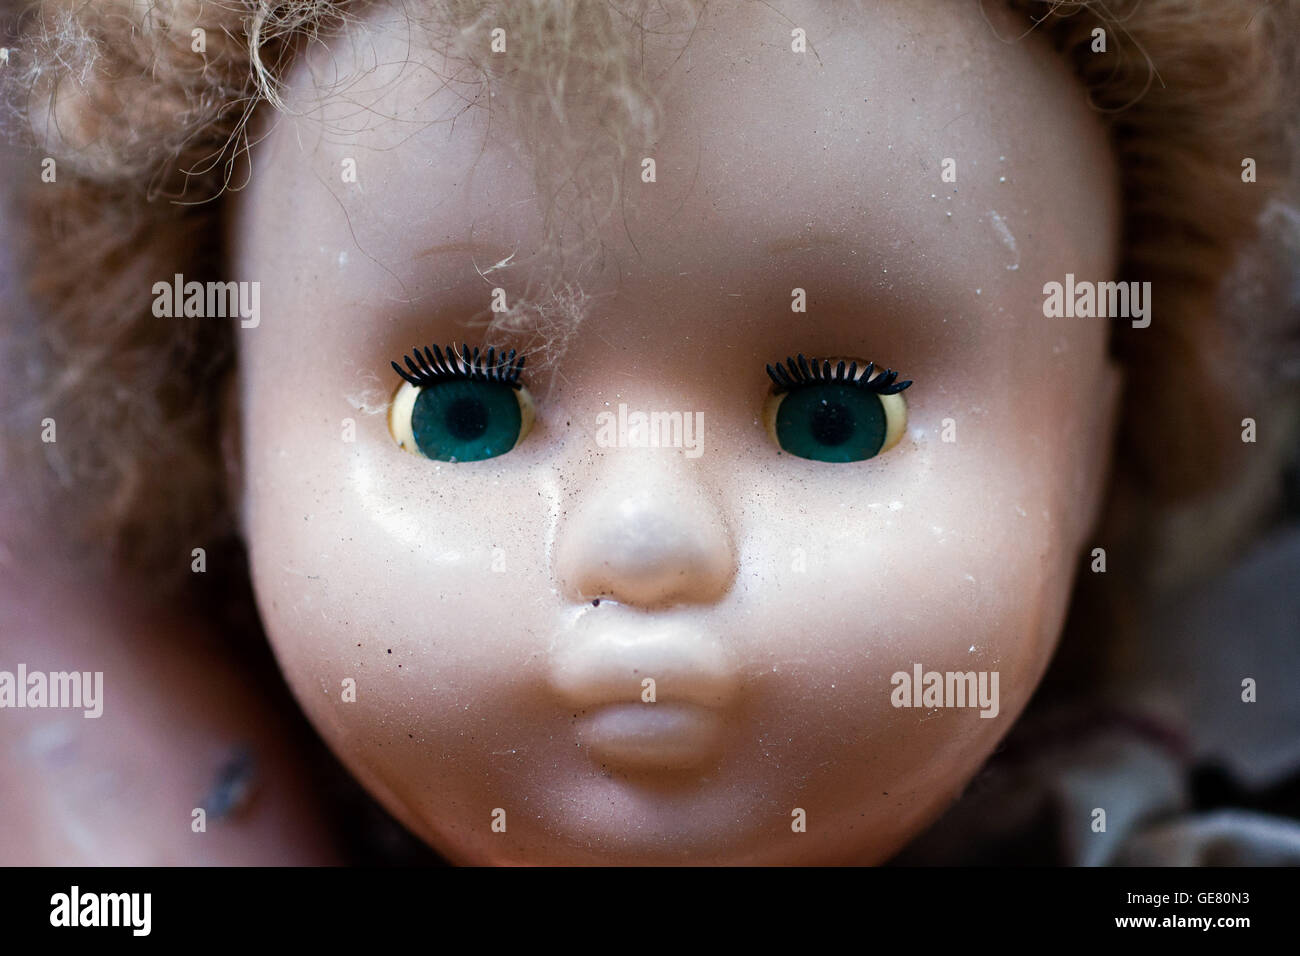 Abandoned doll found in Pripyat kindergarten in the Chernobyl exclusion zone, Ukraine. - Stock Image